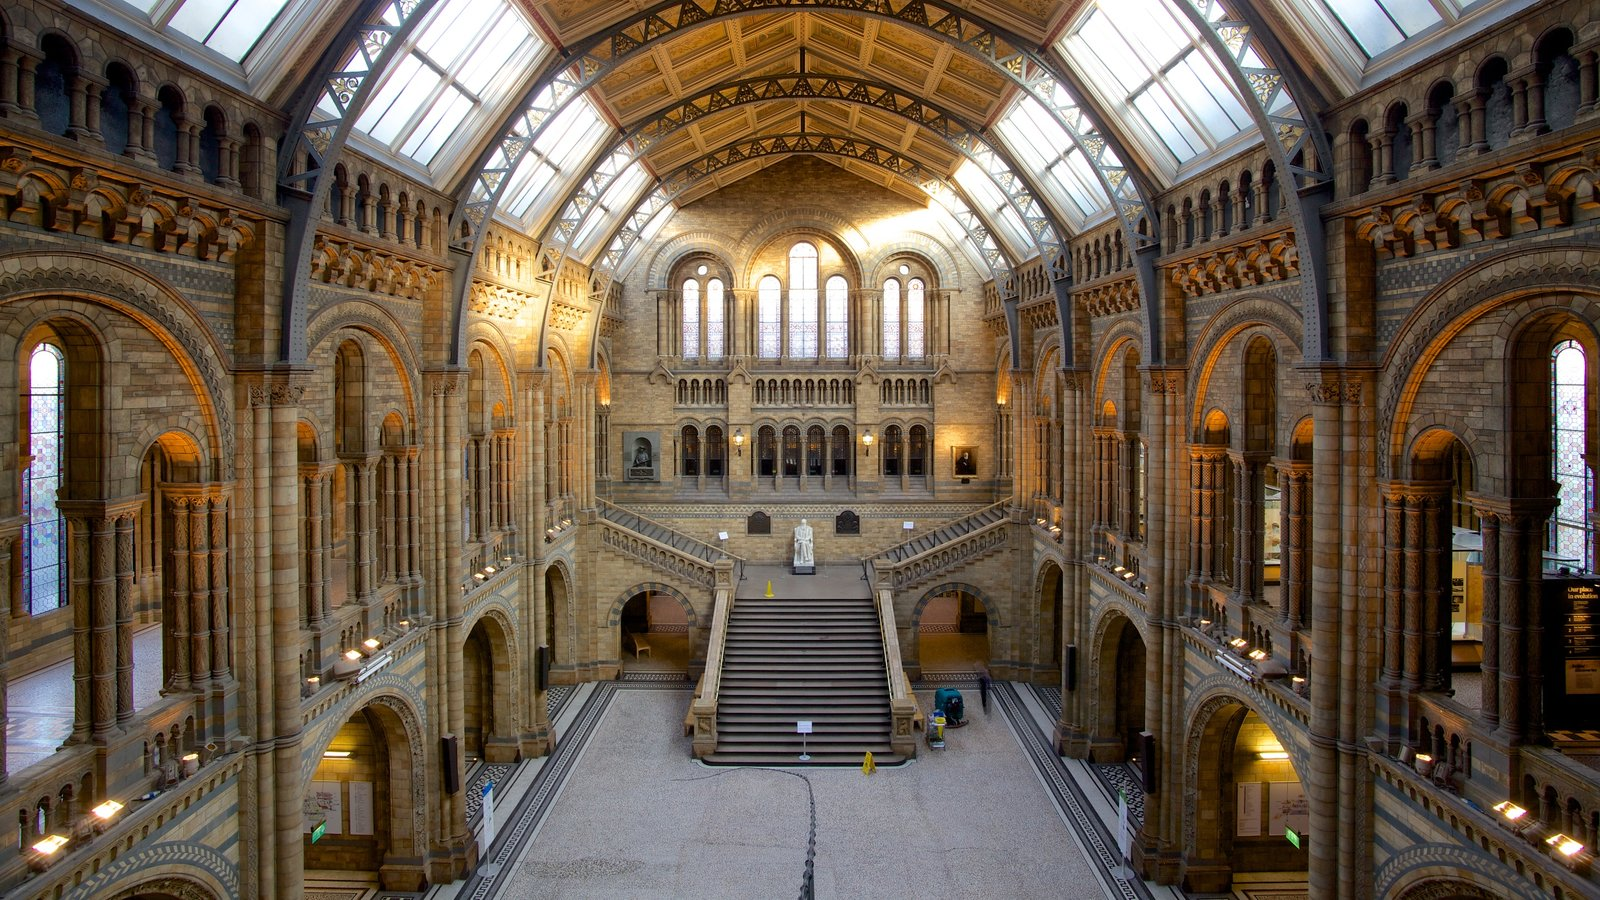 London Natural History Museum featuring interior views, heritage elements and heritage architecture